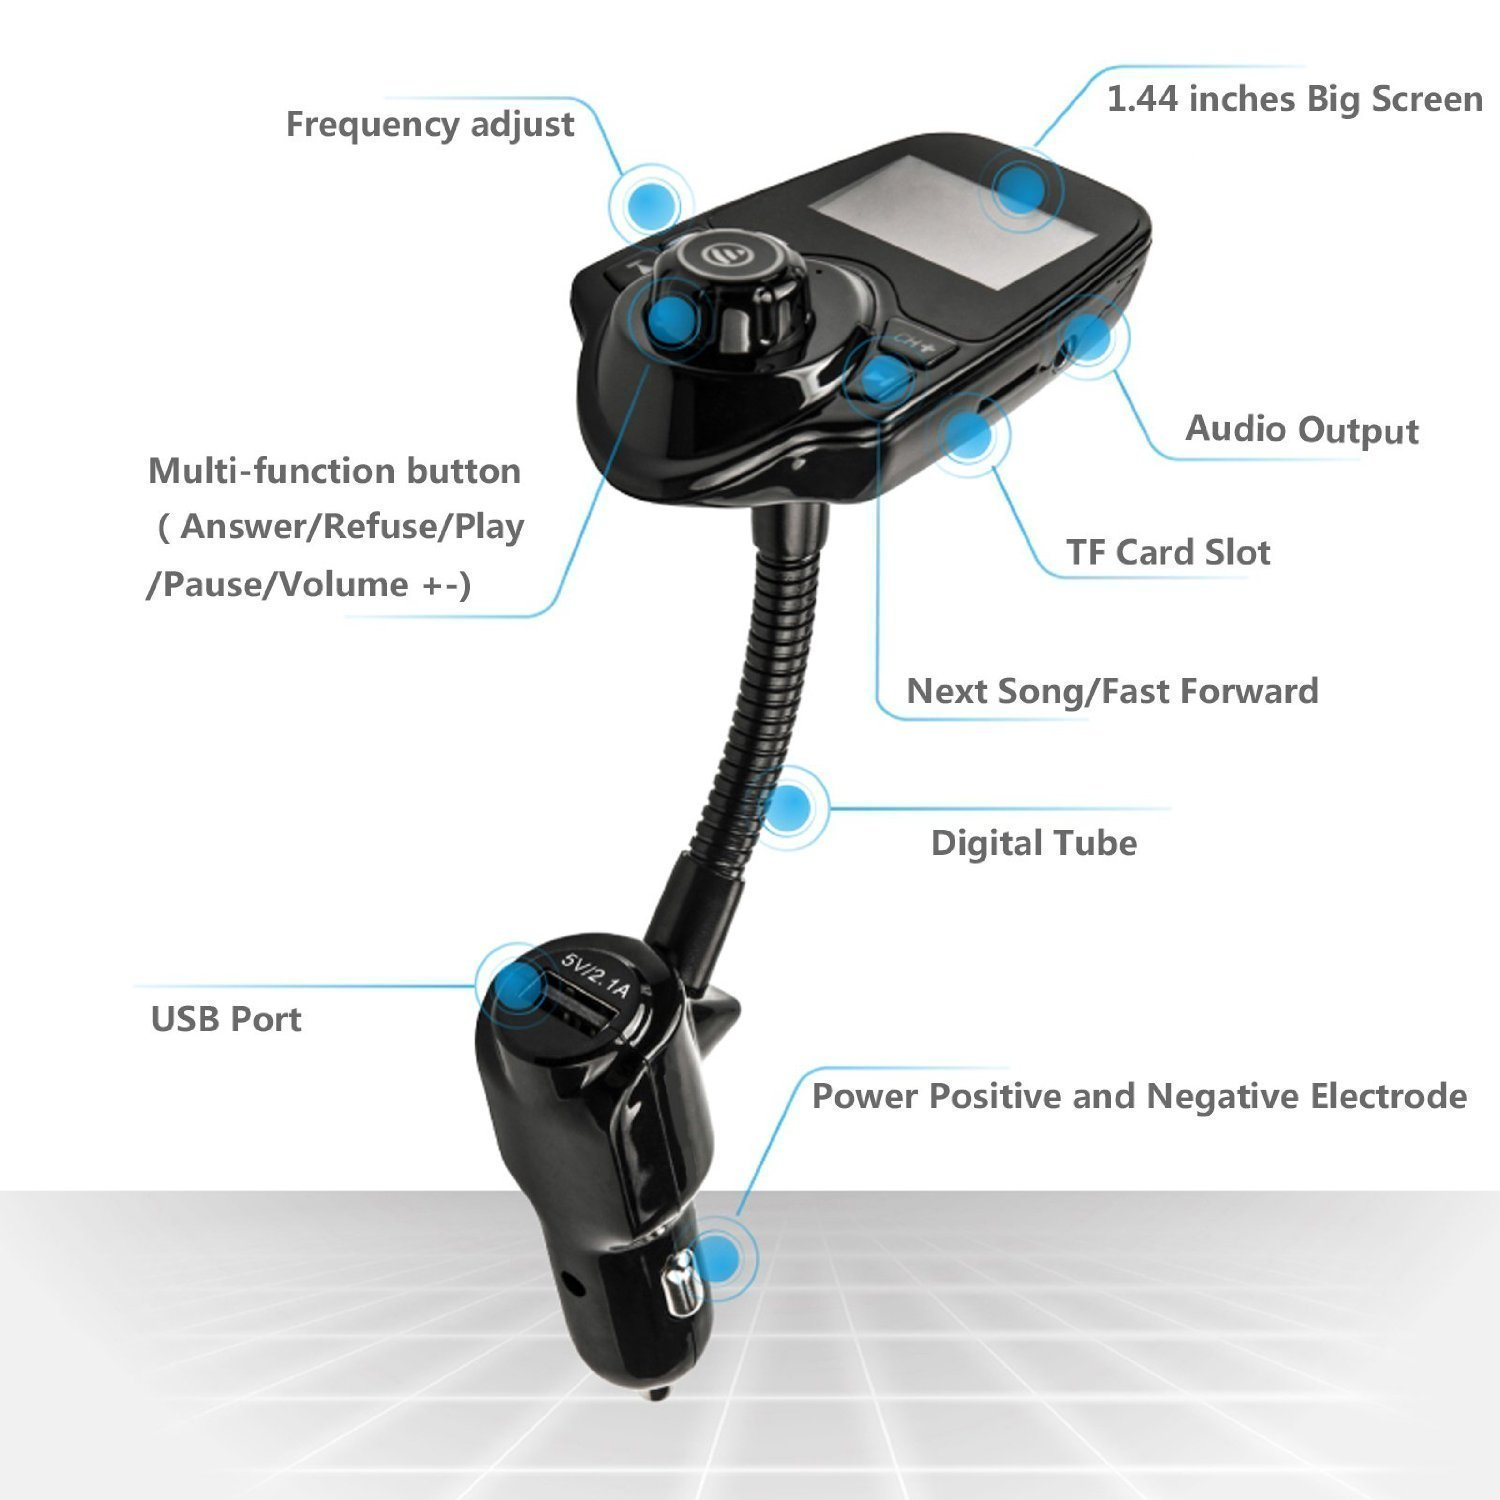 FM Transmitter Wireless Bluetooth FM Transmitter Car Kit Radio Receiver with 5V//2.1A USB Charger Output Support USB Flash Driver and Micro SD Card with AUX Ann Bully 4327064008